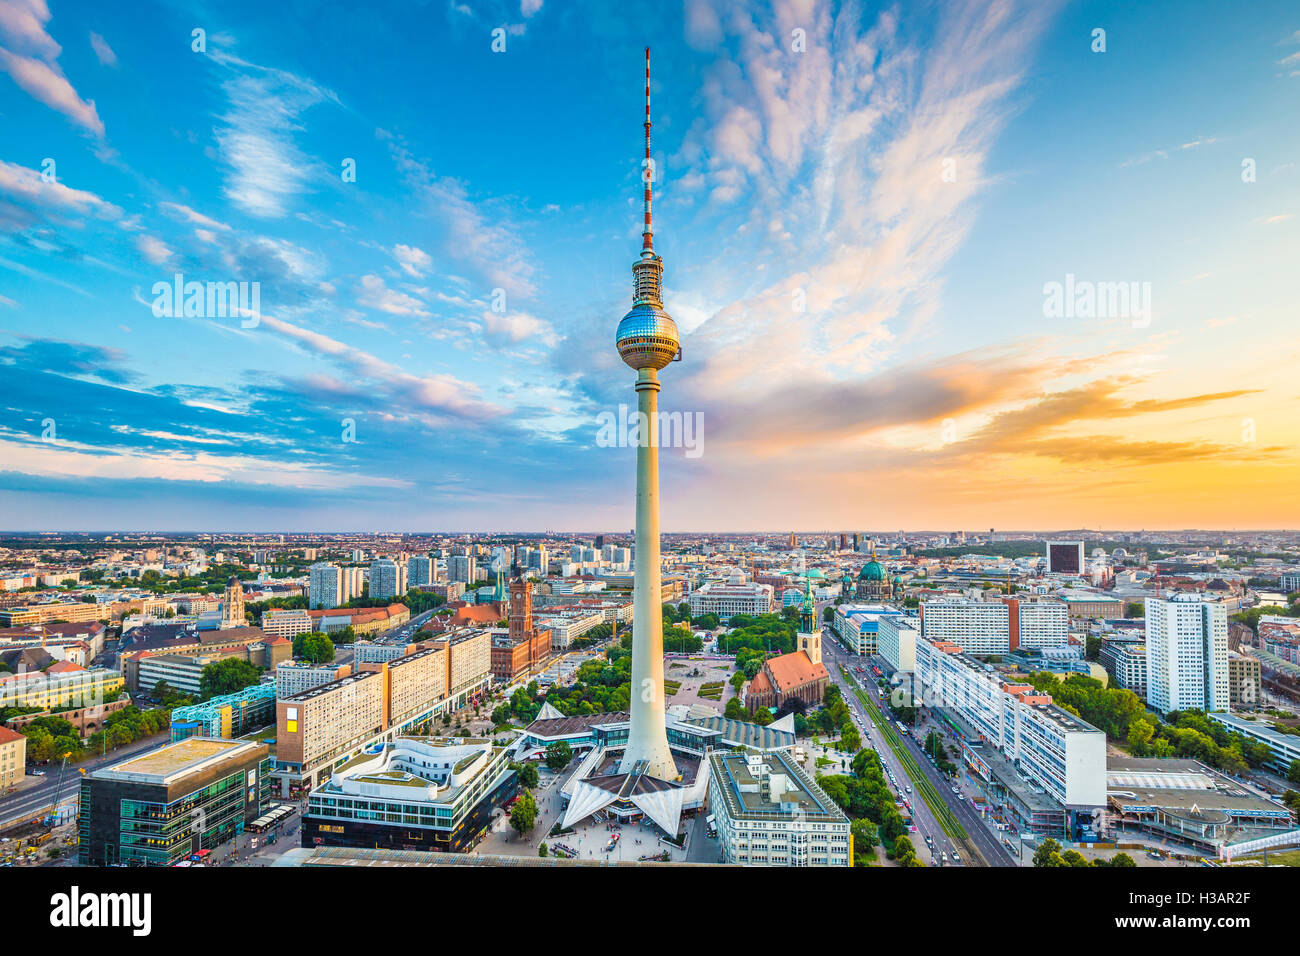 Berlin skyline panorama with famous TV tower at Alexanderplatz and dramatic clouds at sunset, Germany - Stock Image